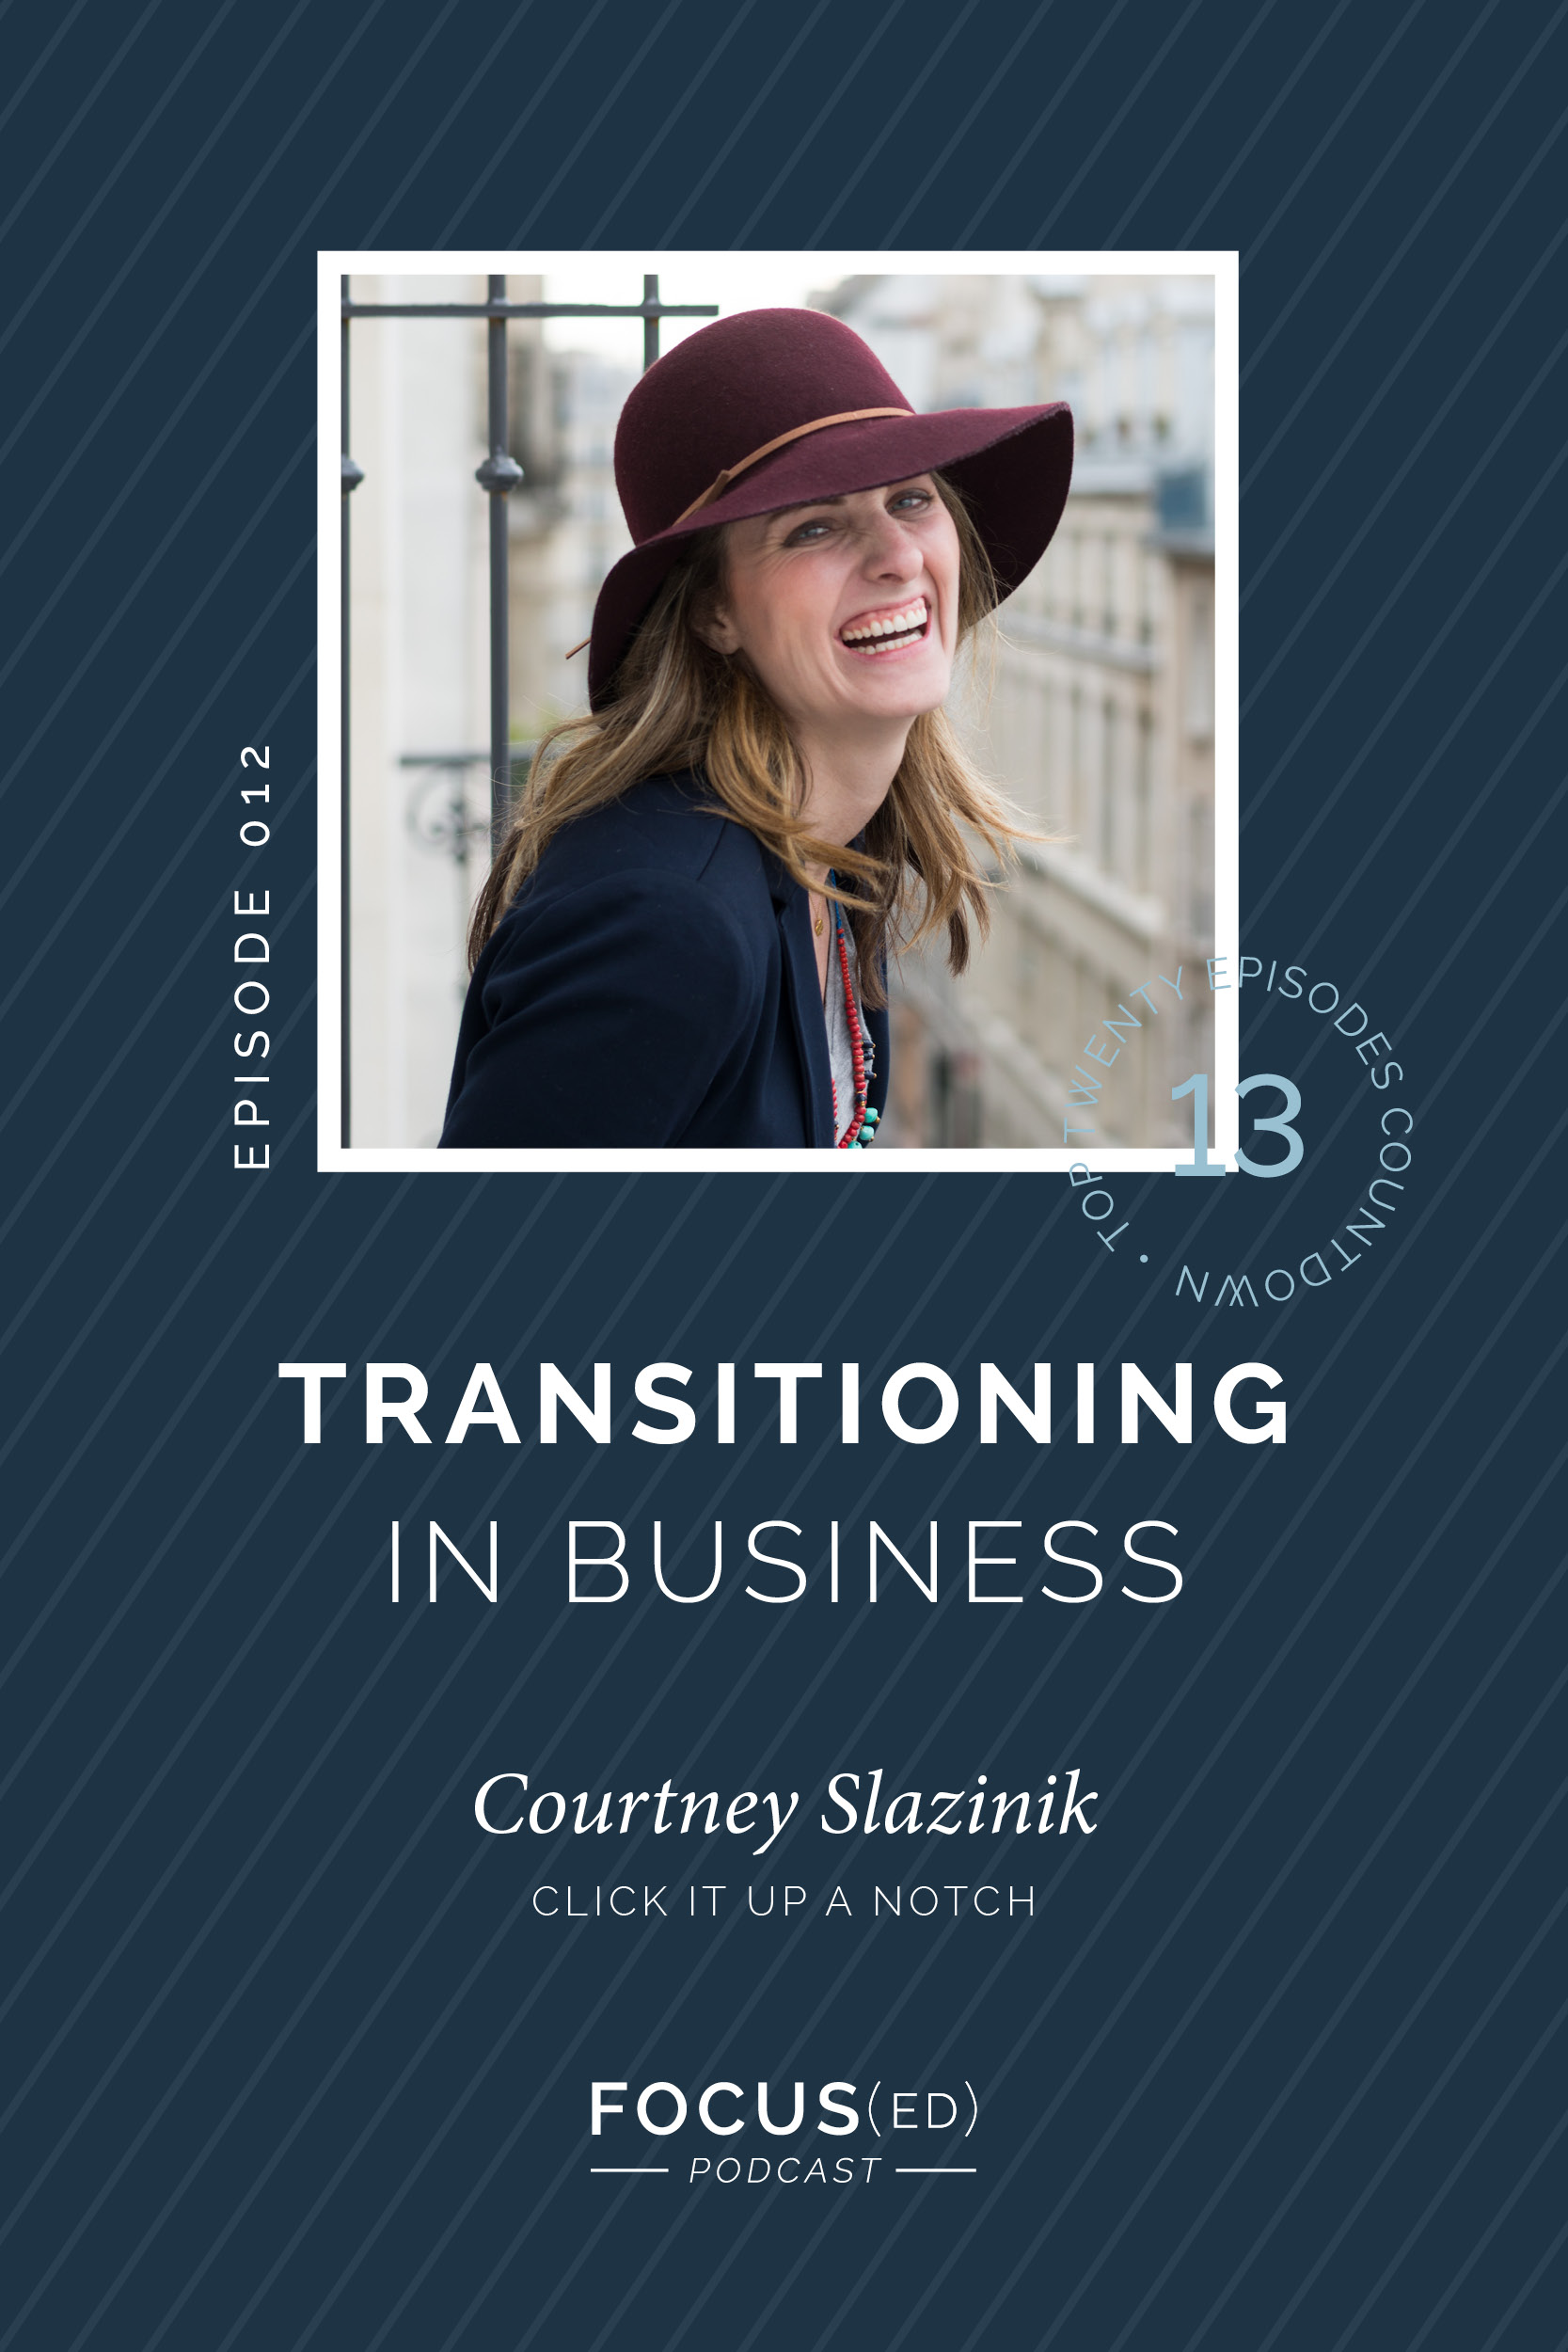 Top 20: #13 How to make transitions in your business, Courtney Slazinik of Click it up a Notch | Focus(ed) Podcast